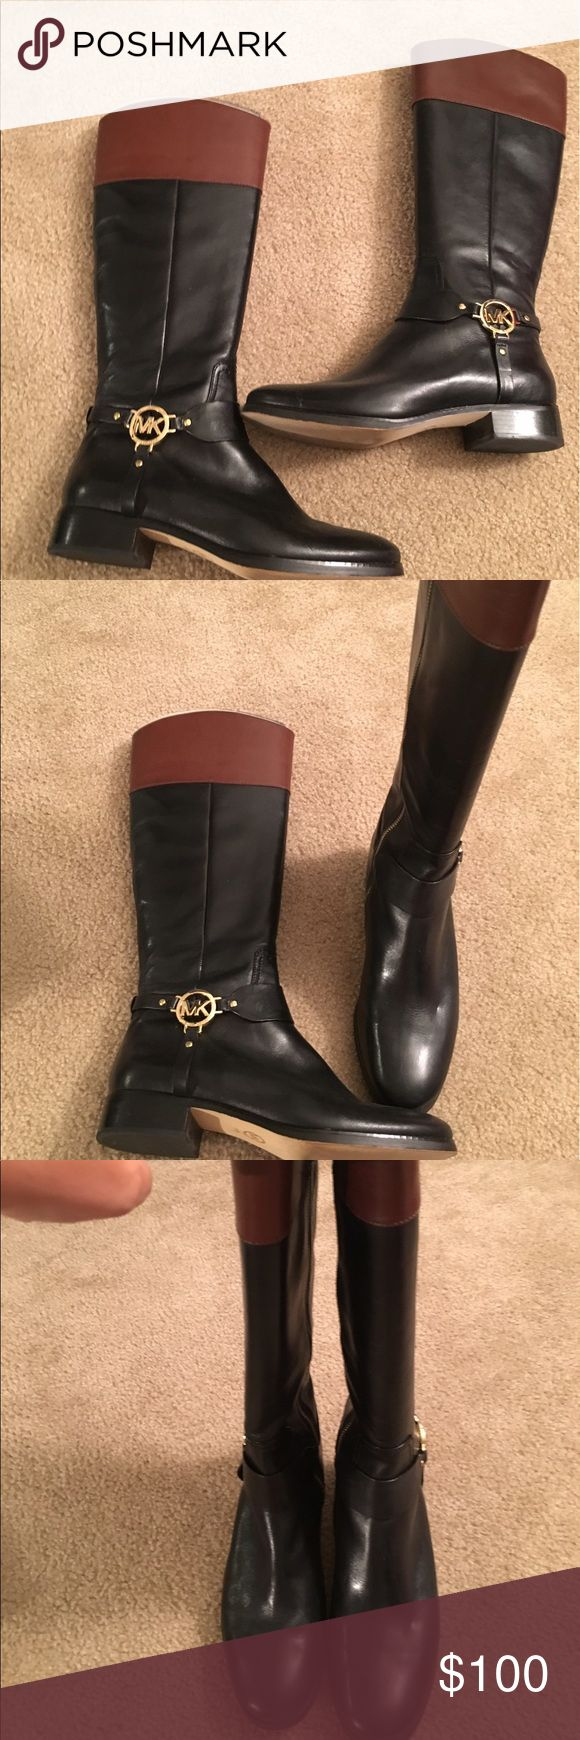 Michael Kor black and brown leather riding boots Hardly worn black and brown leather with gold logo Michael Kors Shoes Combat & Moto Boots